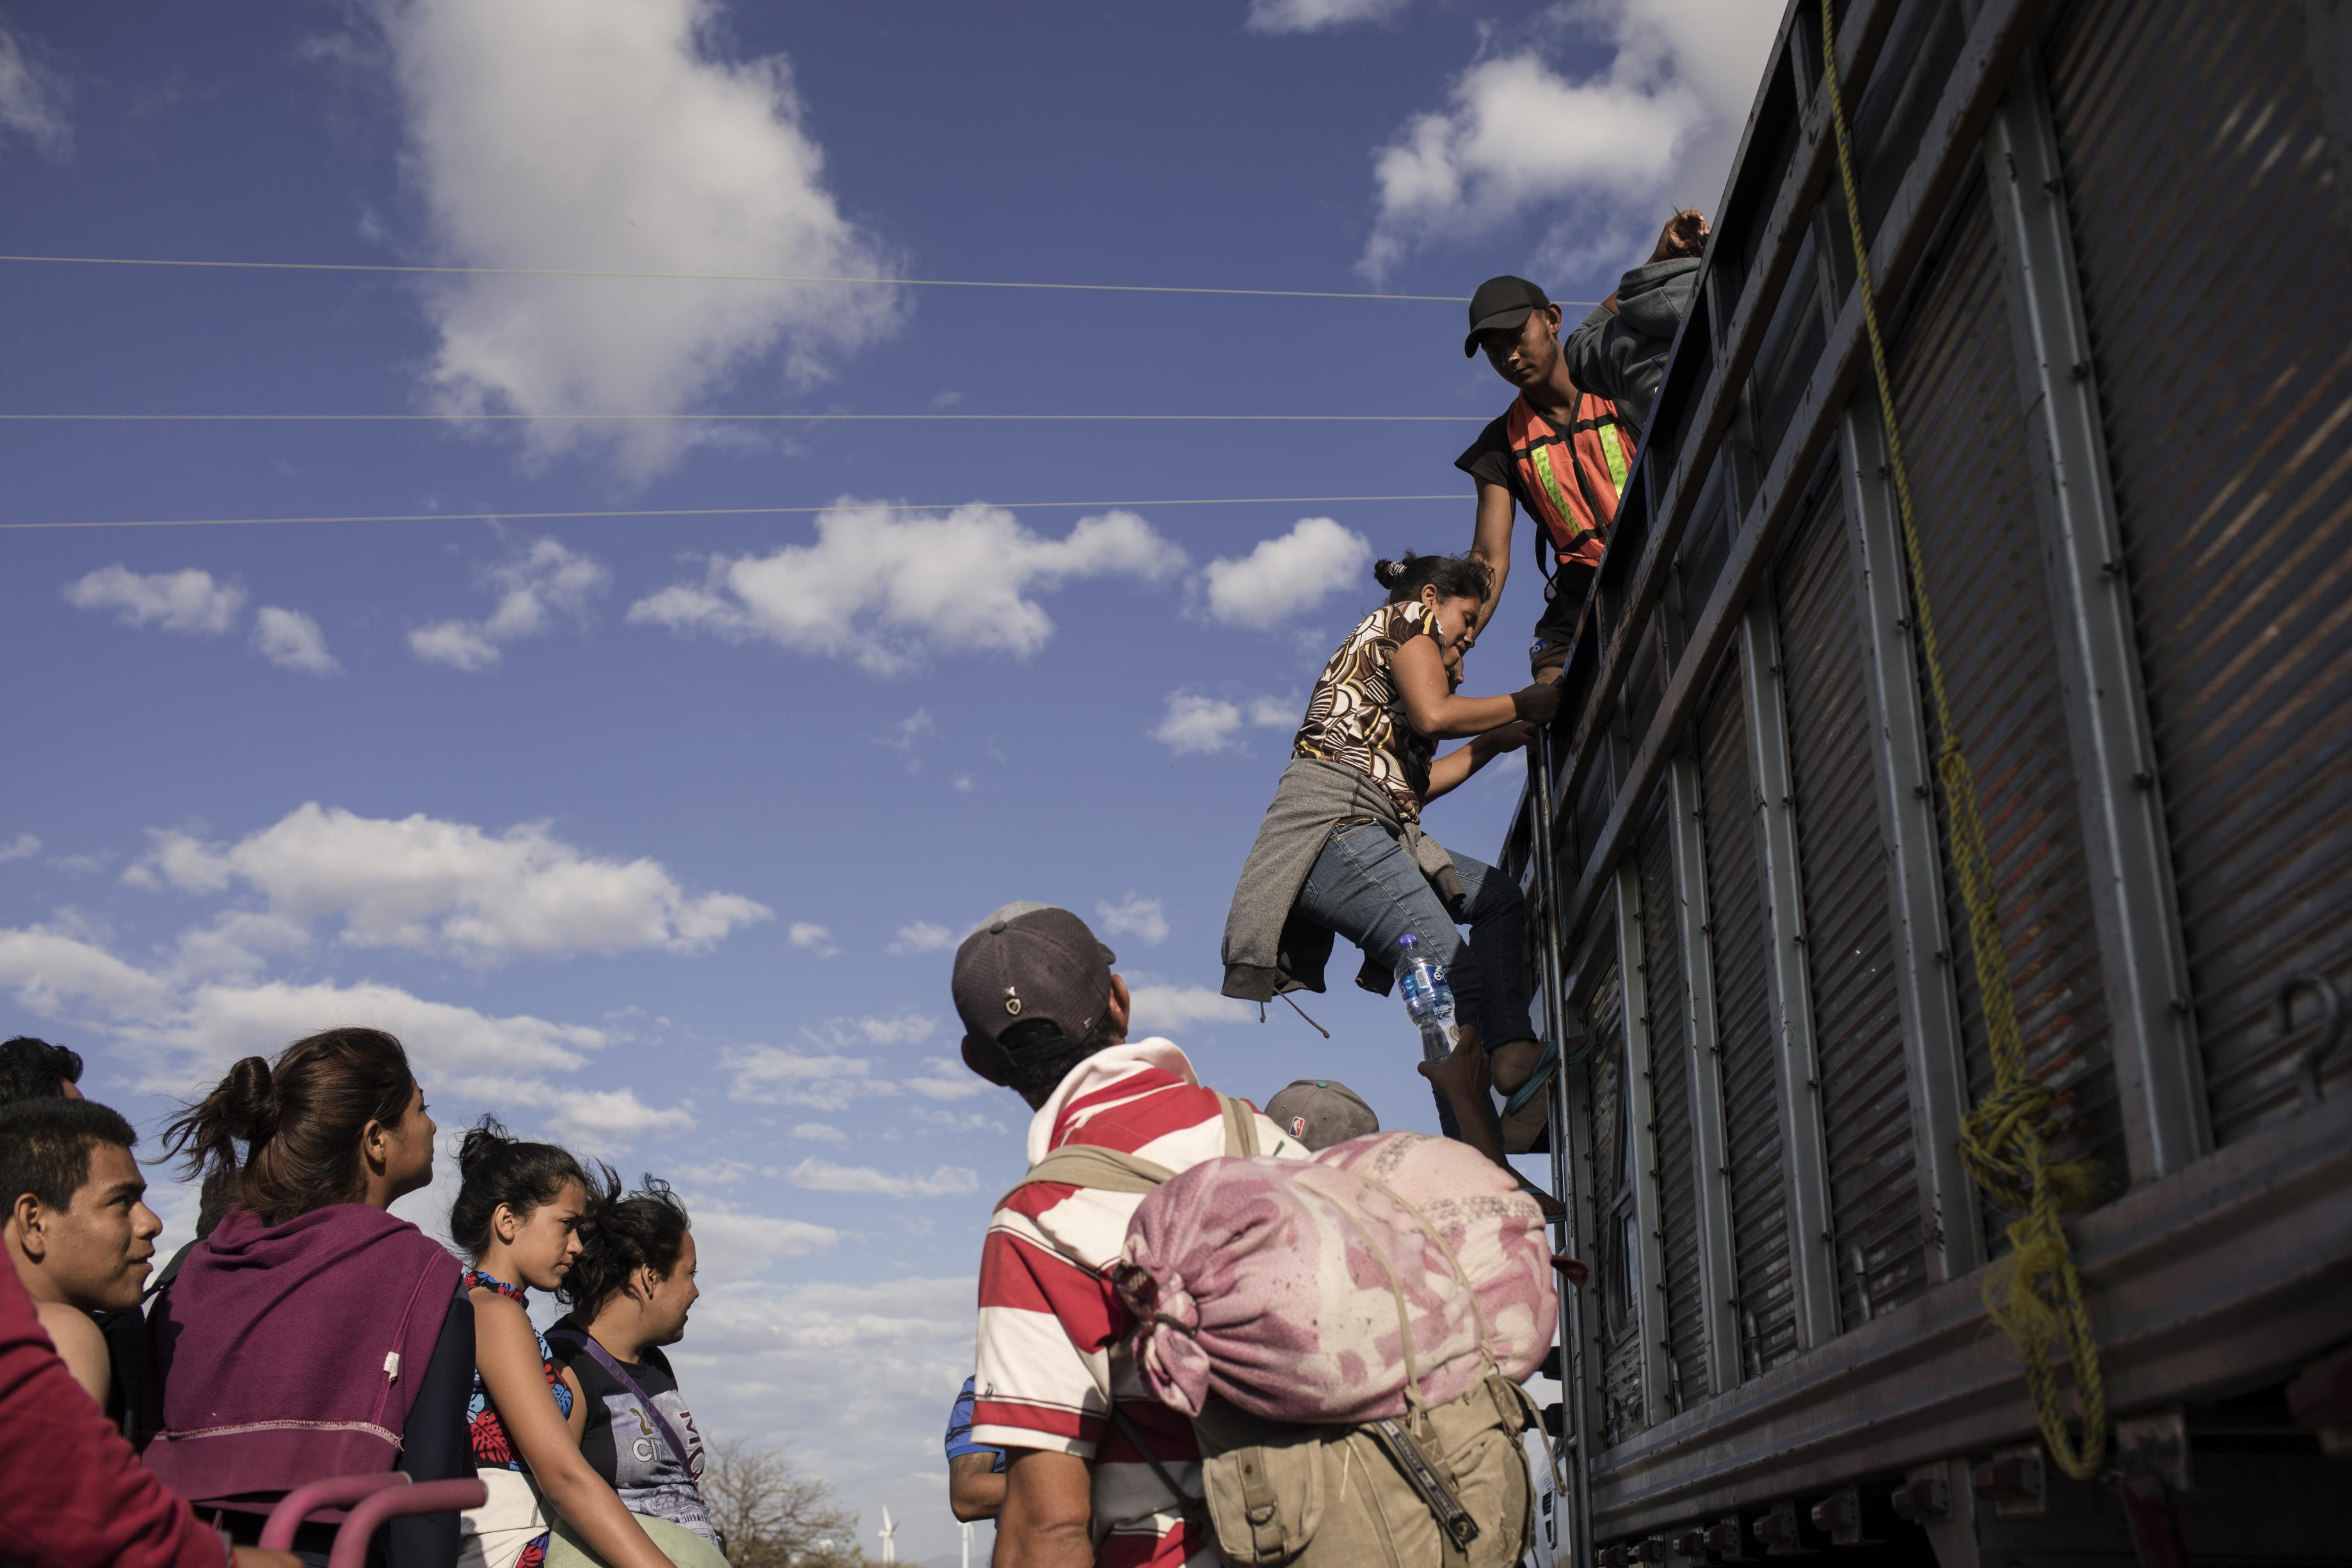 A group of Central American refugees and asylum seekers, led by the non-profit humanitarian organization Pueblos Sin Fronteras (People Without Borders), board a truck offering a ride to their next destination in the town of Santiago Niltepec, Oaxaca state, Mexico, on Saturday, March 31, 2018. The Trump administration is crafting legislation to make it harder for refugees to gain asylum in the U.S. and loosen restrictions on detaining immigrants apprehended near the border, a senior White House official said. Photographer: Jordi Ruiz Cirera/Bloomberg